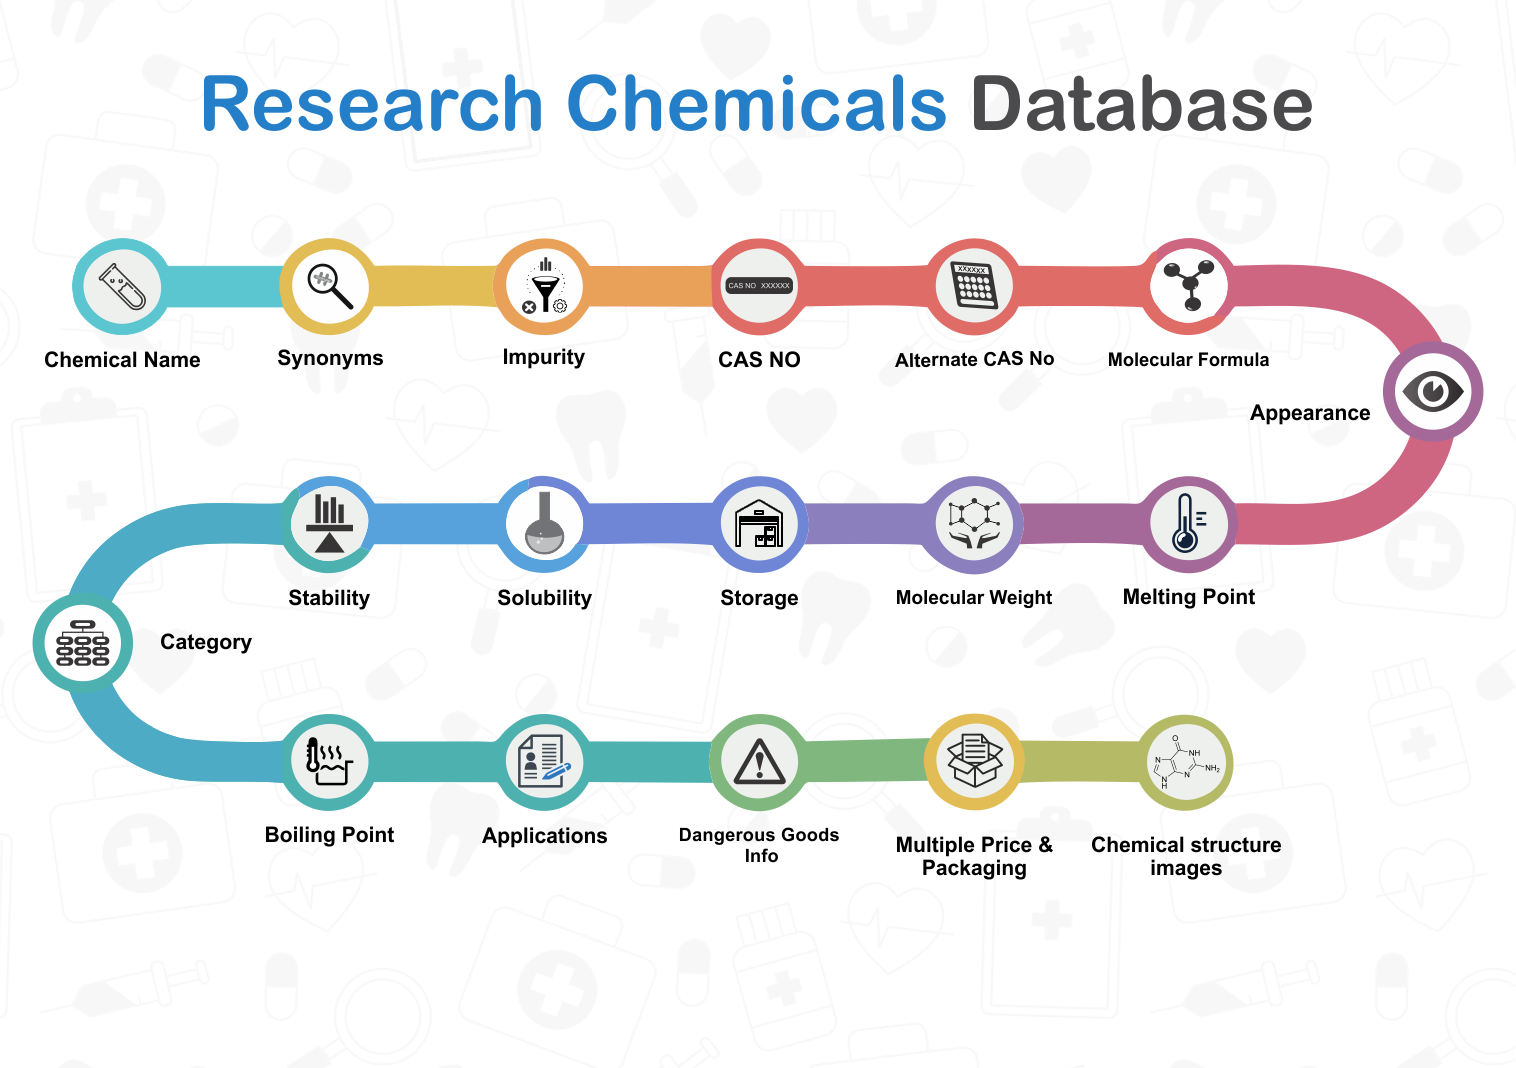 Research Chemicals Database